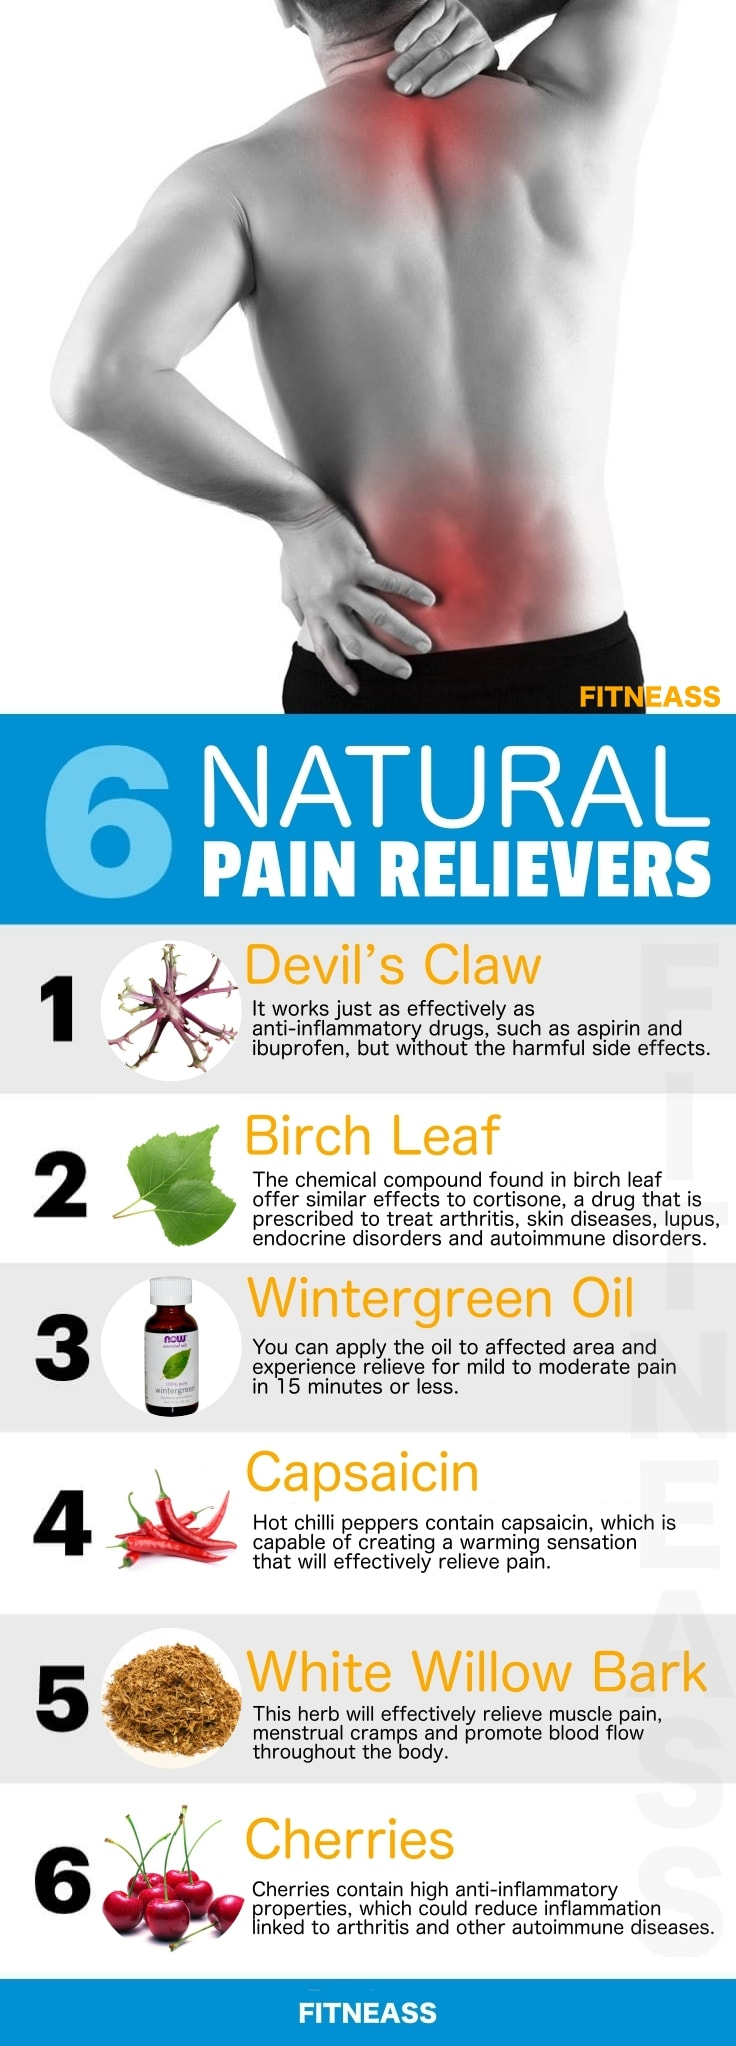 Natural Pain Relievers Infographic